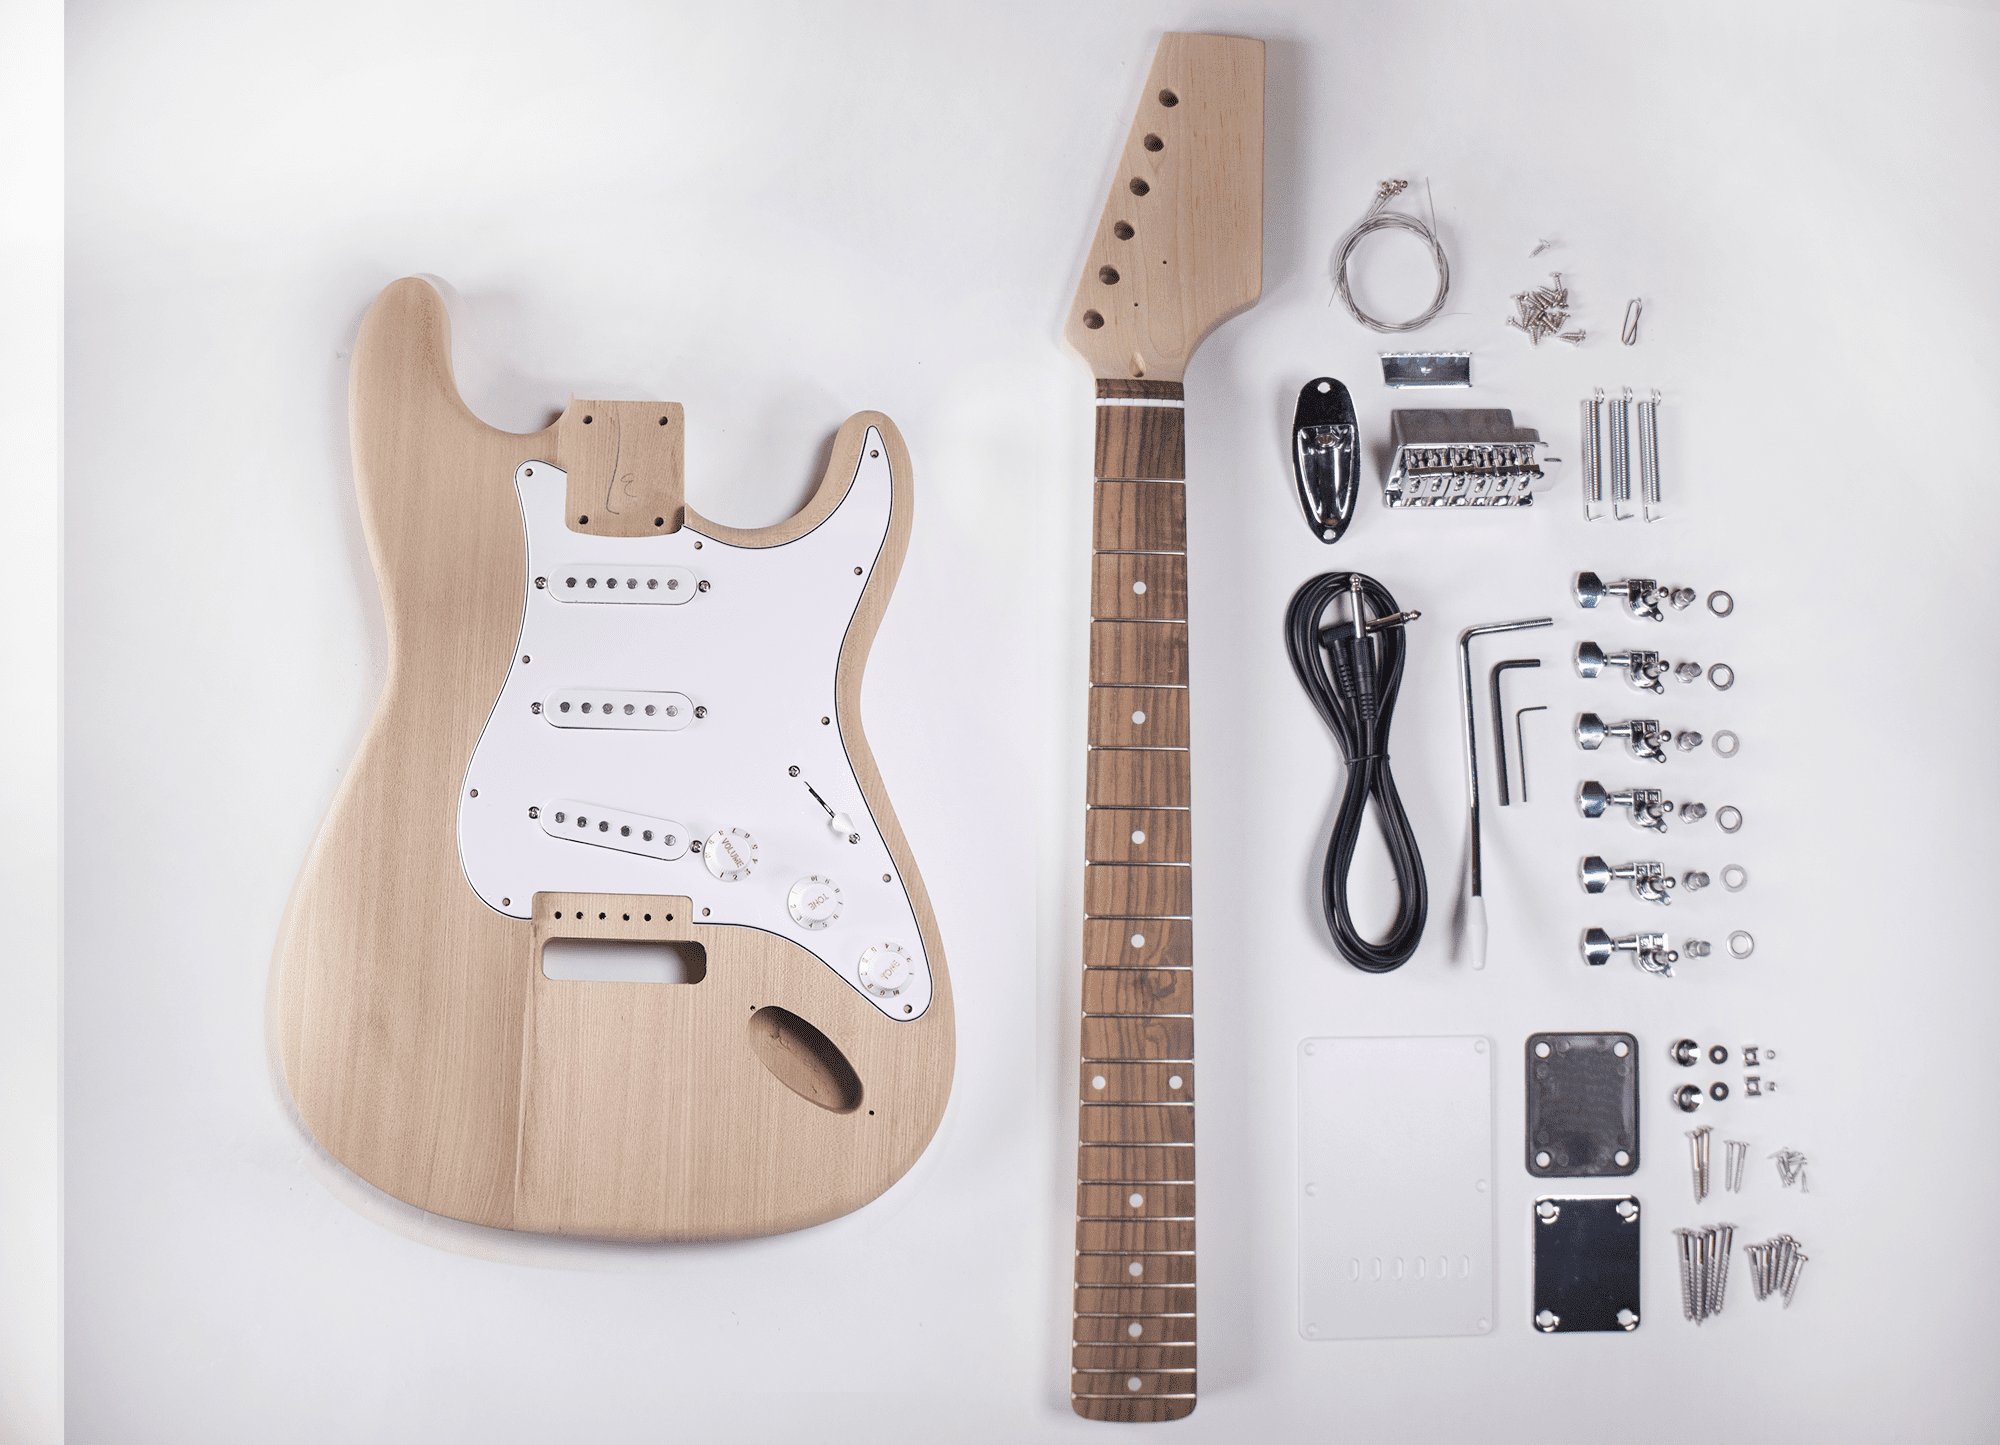 diy electric guitar kit ash strat style build your own guitar. Black Bedroom Furniture Sets. Home Design Ideas